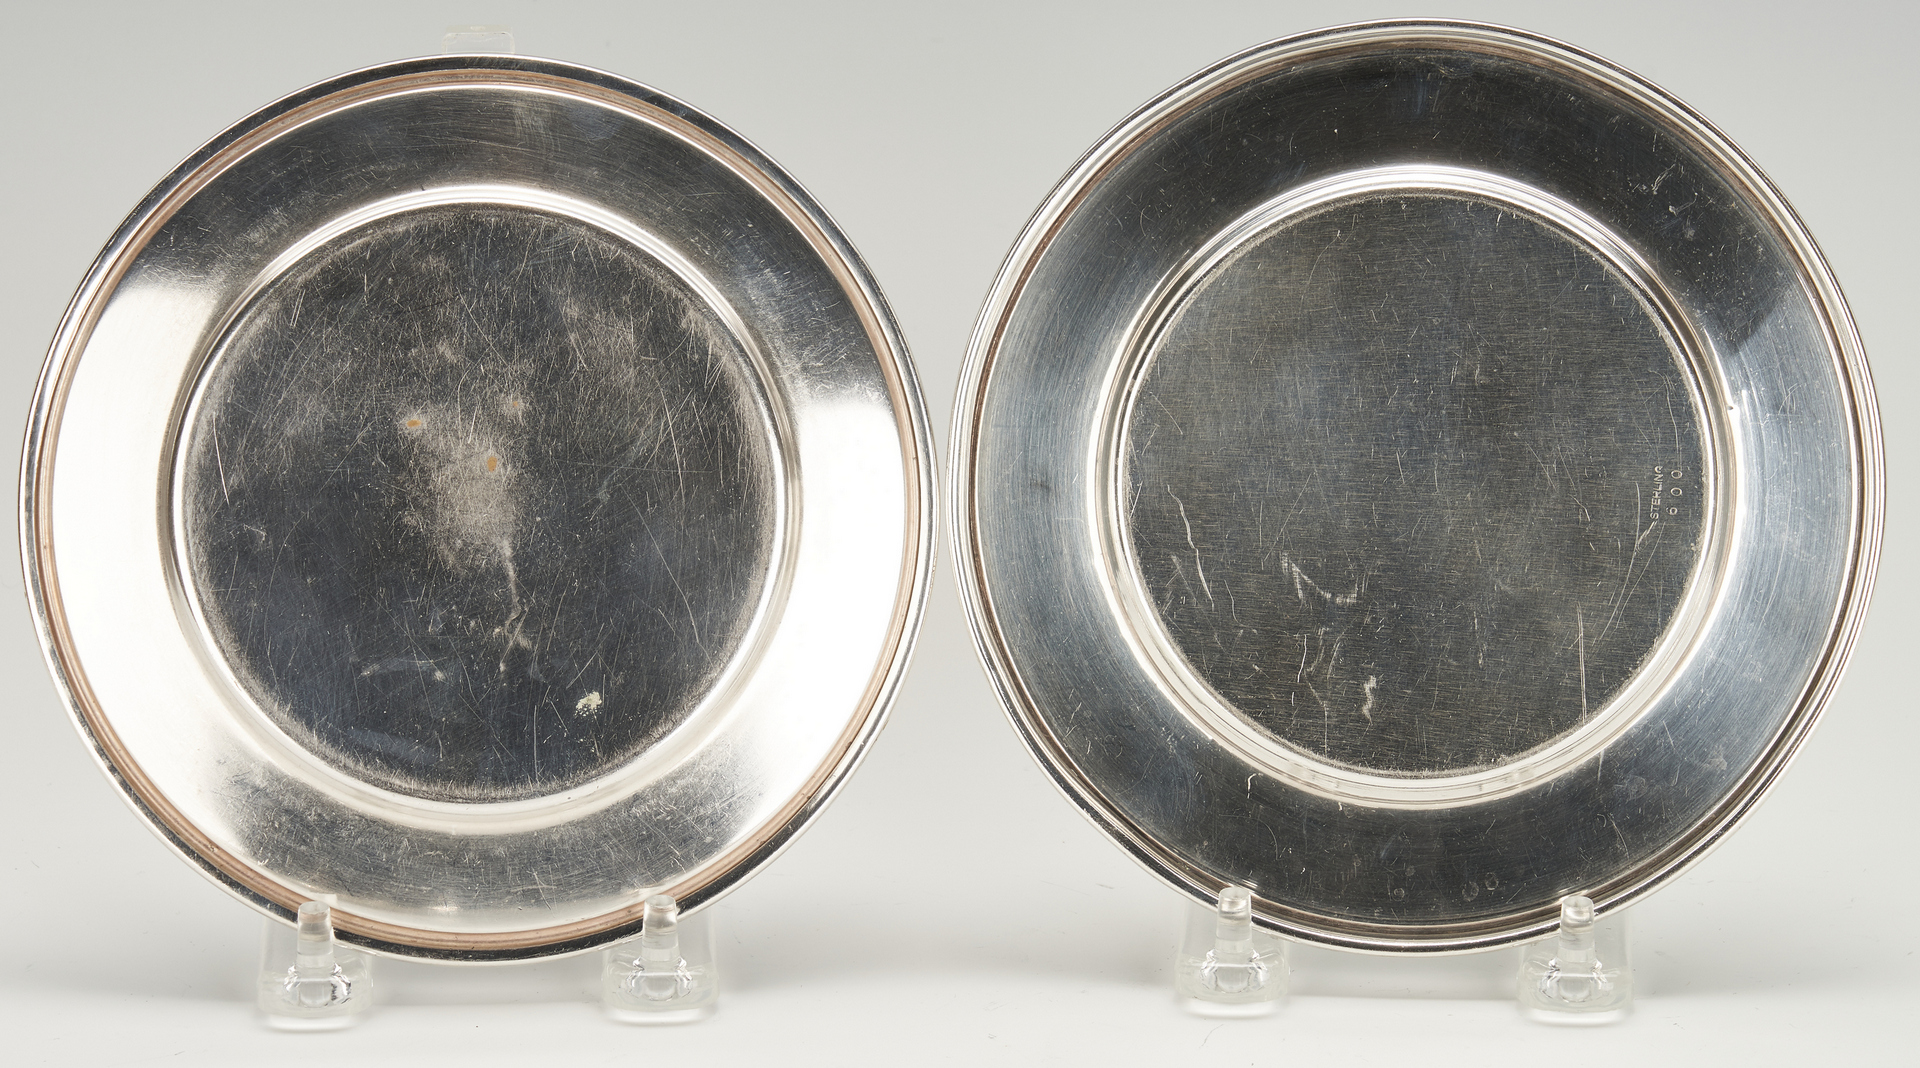 Lot 807: 11 pcs  Holloware: Bread Plates, Kirk candy dishes